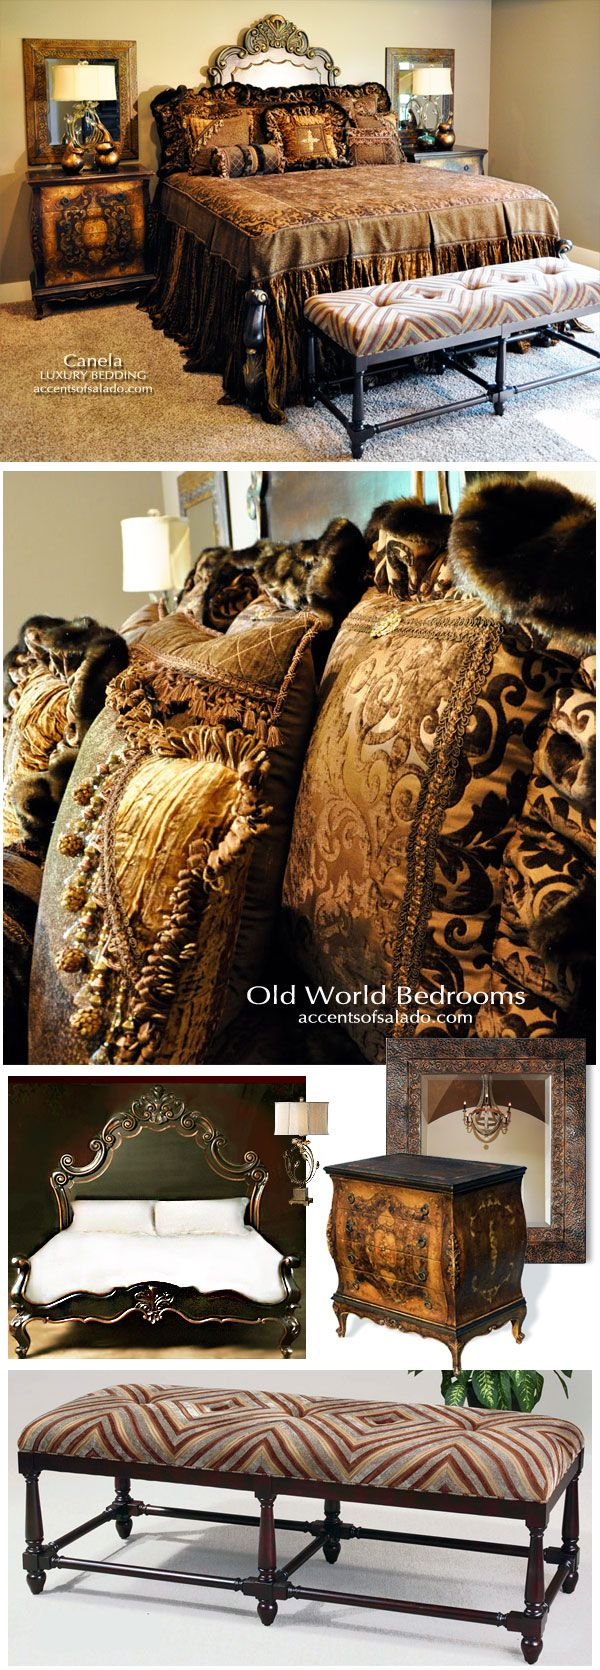 How To Furnish An Old World Bedroom Hand Carved Bed With Tall Headboard